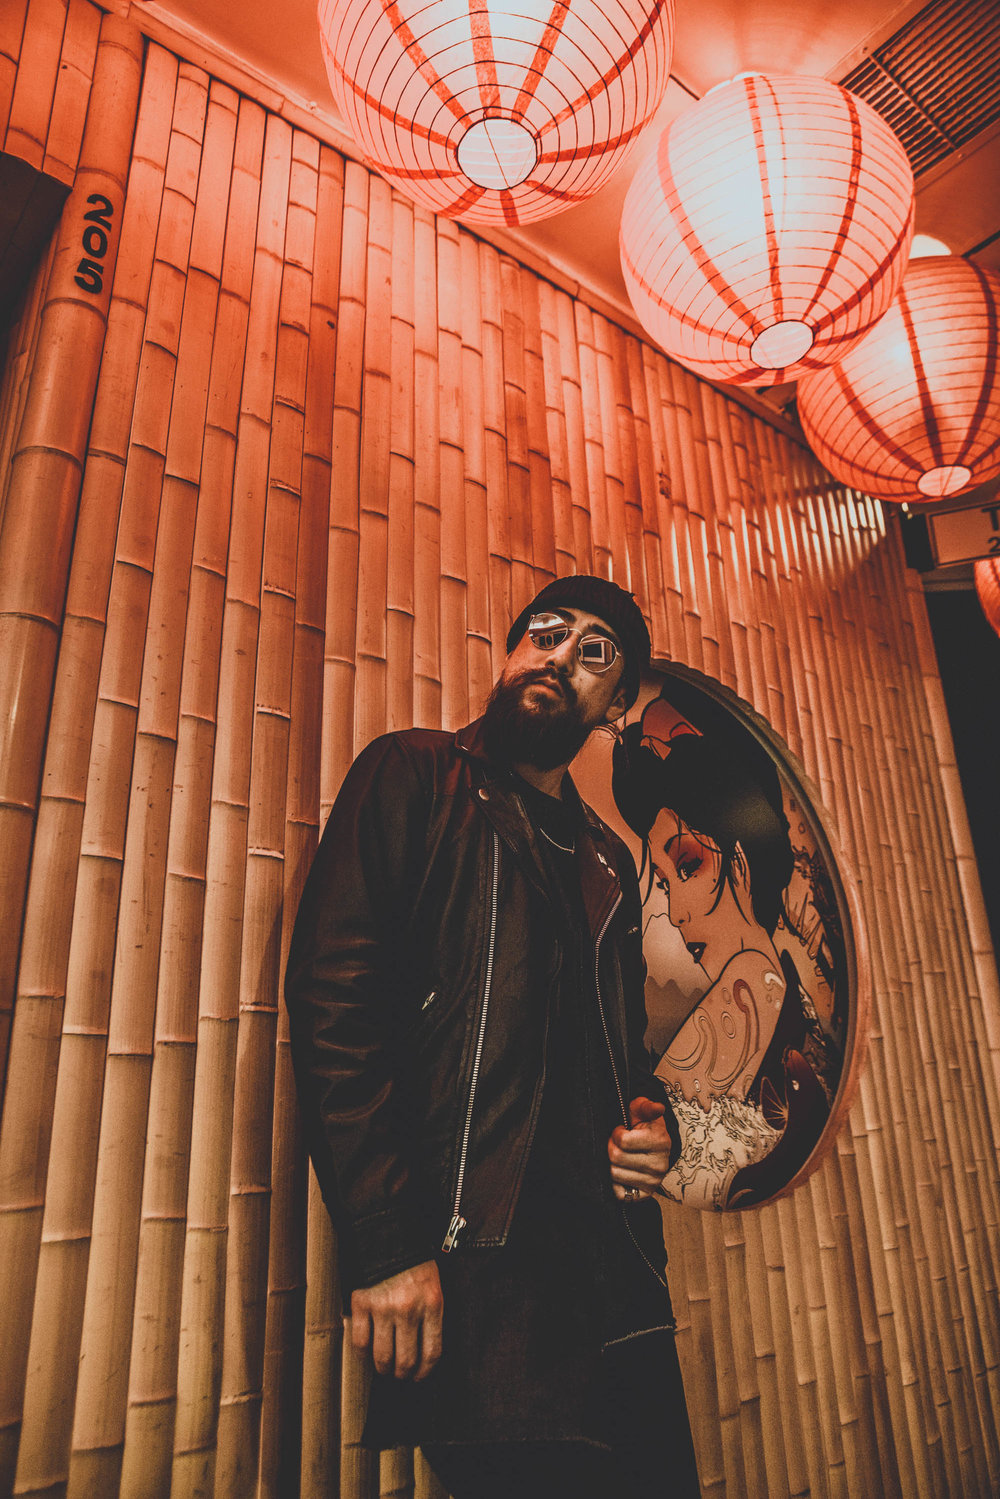 JUSTFENG RYAN FENG STREESTYLE OOTDMEN ASIAN BEARD FASHION PHOTOGRAPHY